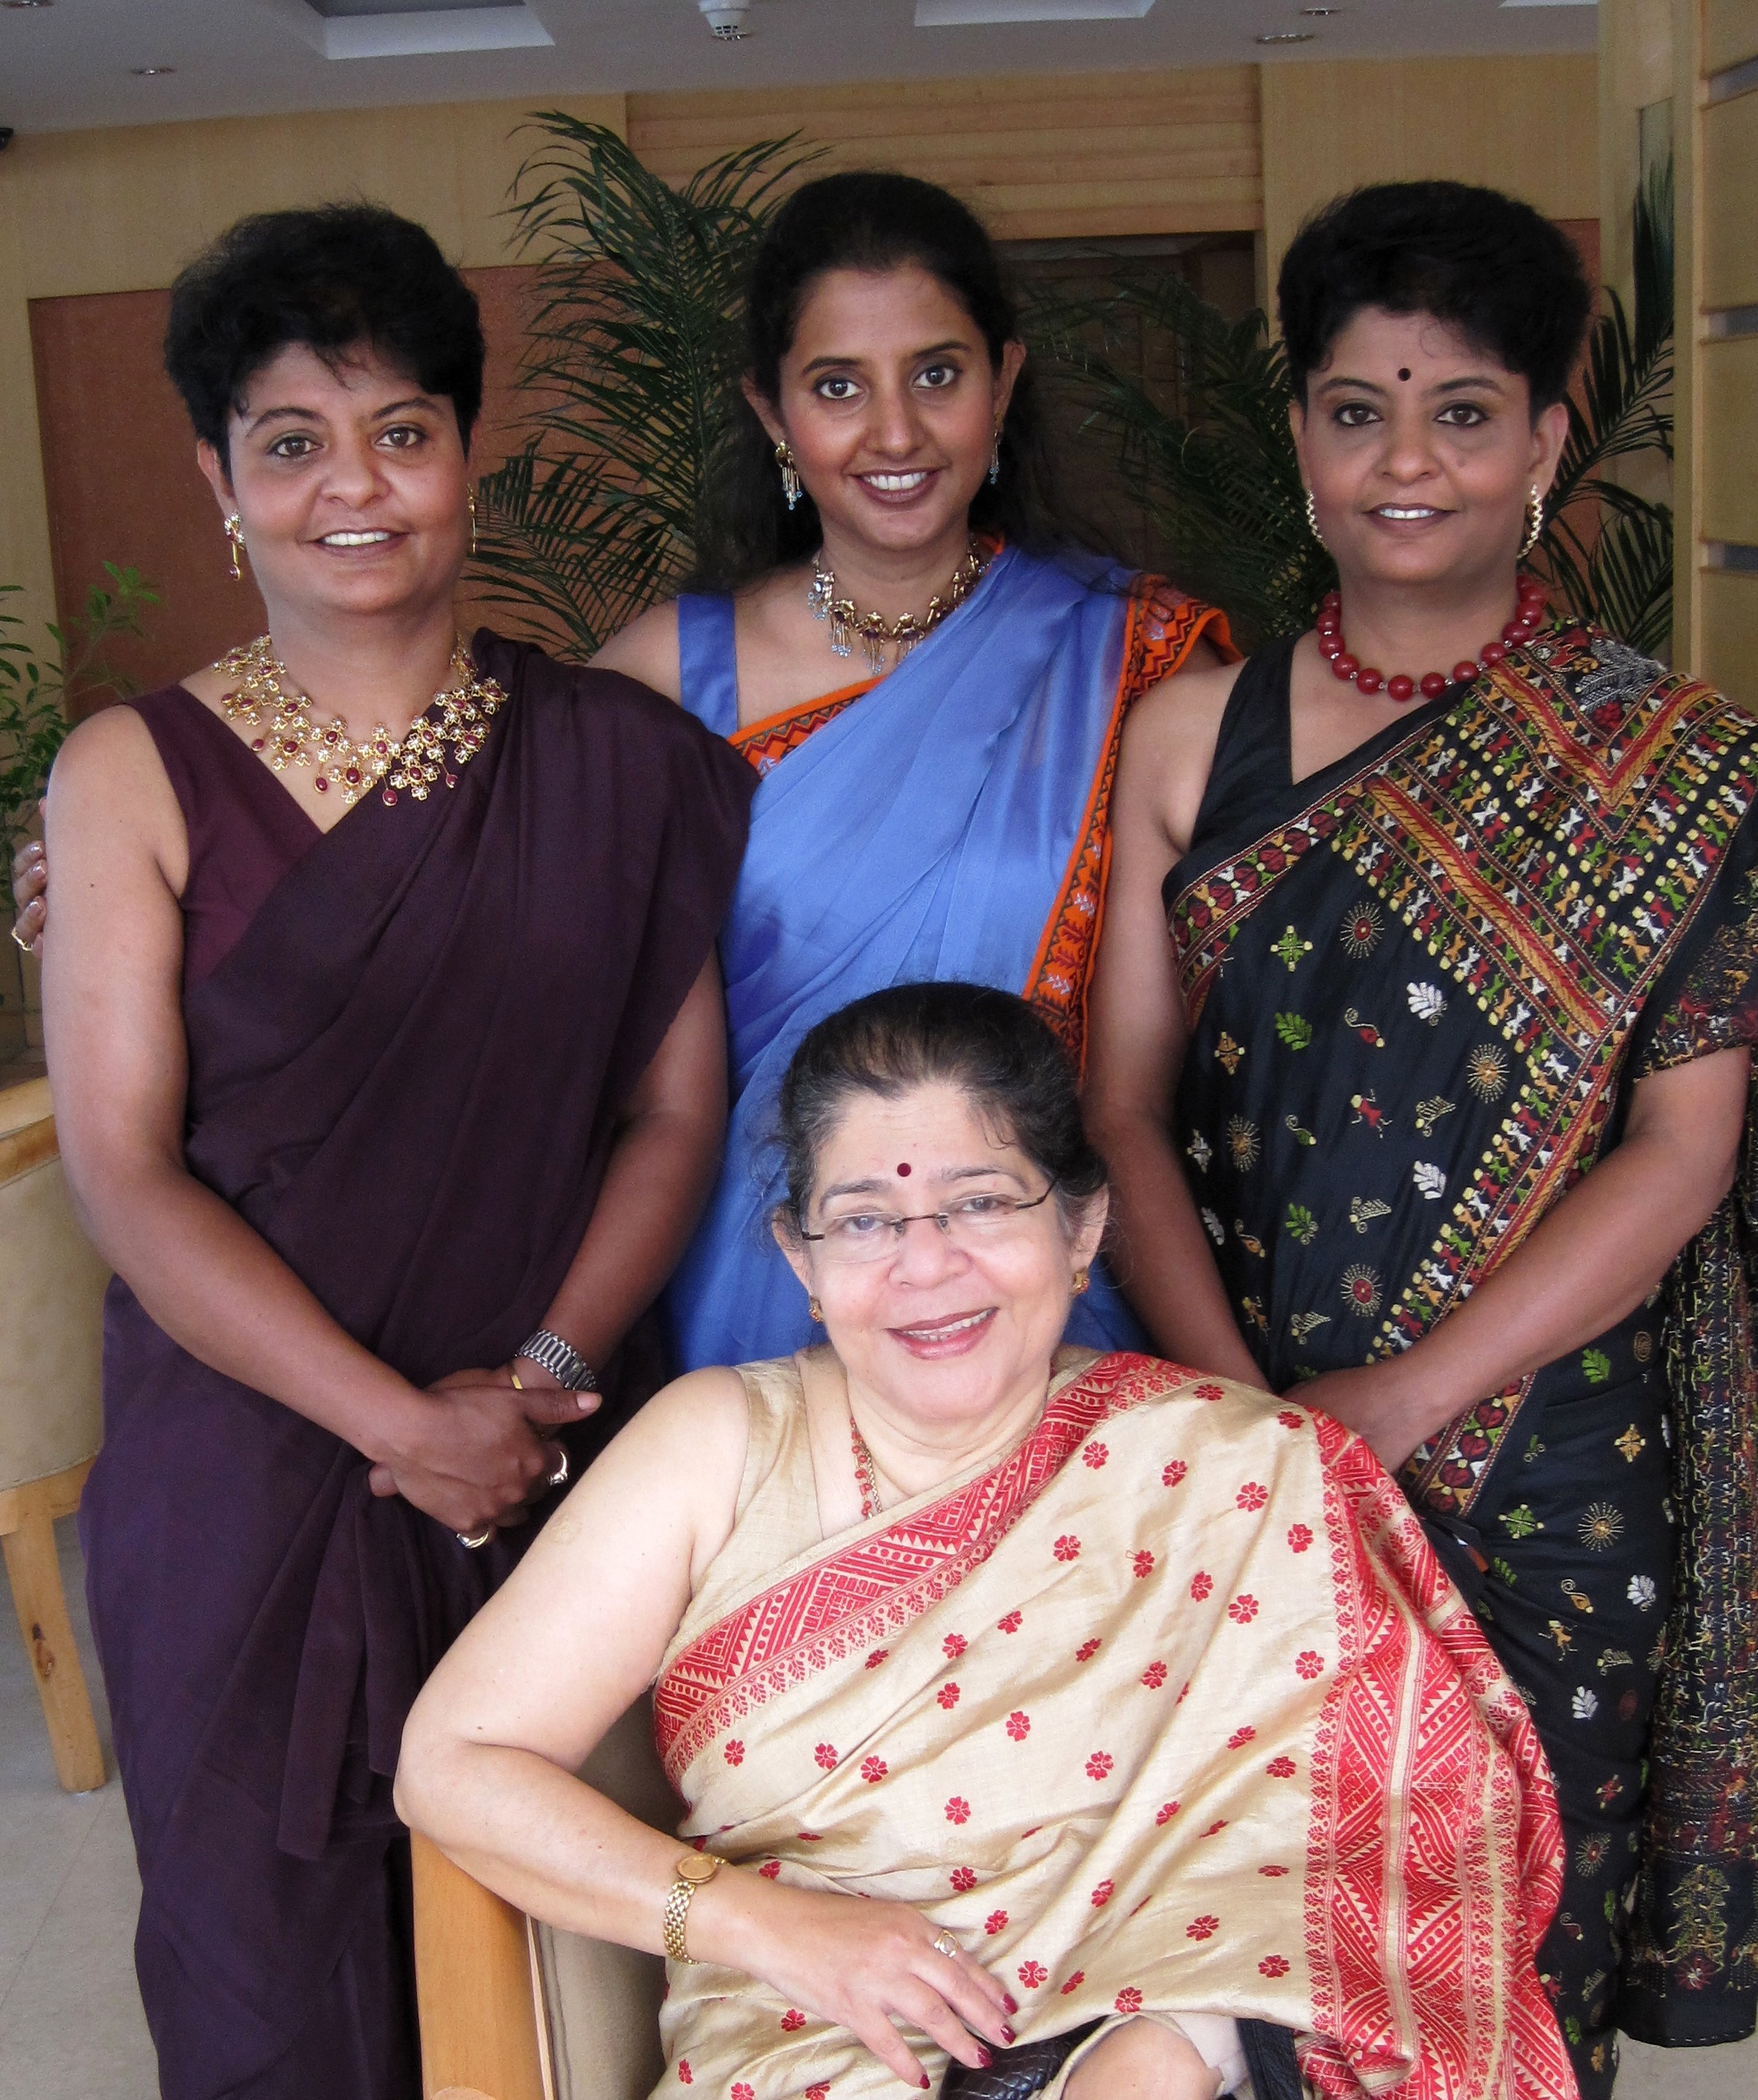 Lakshmis-Mum-and-Sisters.jpg